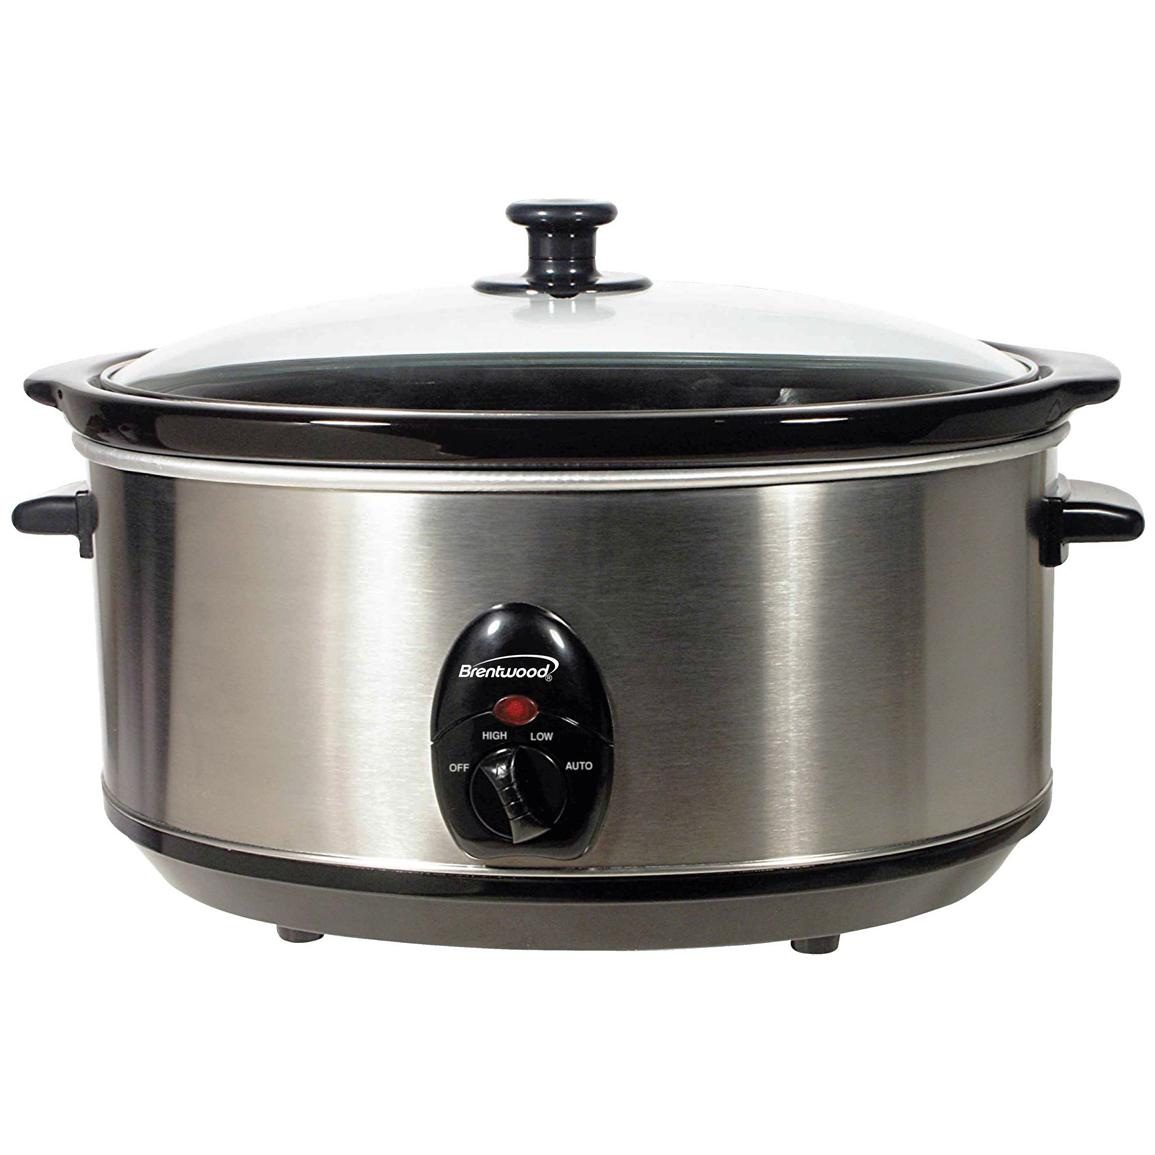 6.5-quart Slow Cooker, Stainless Steel